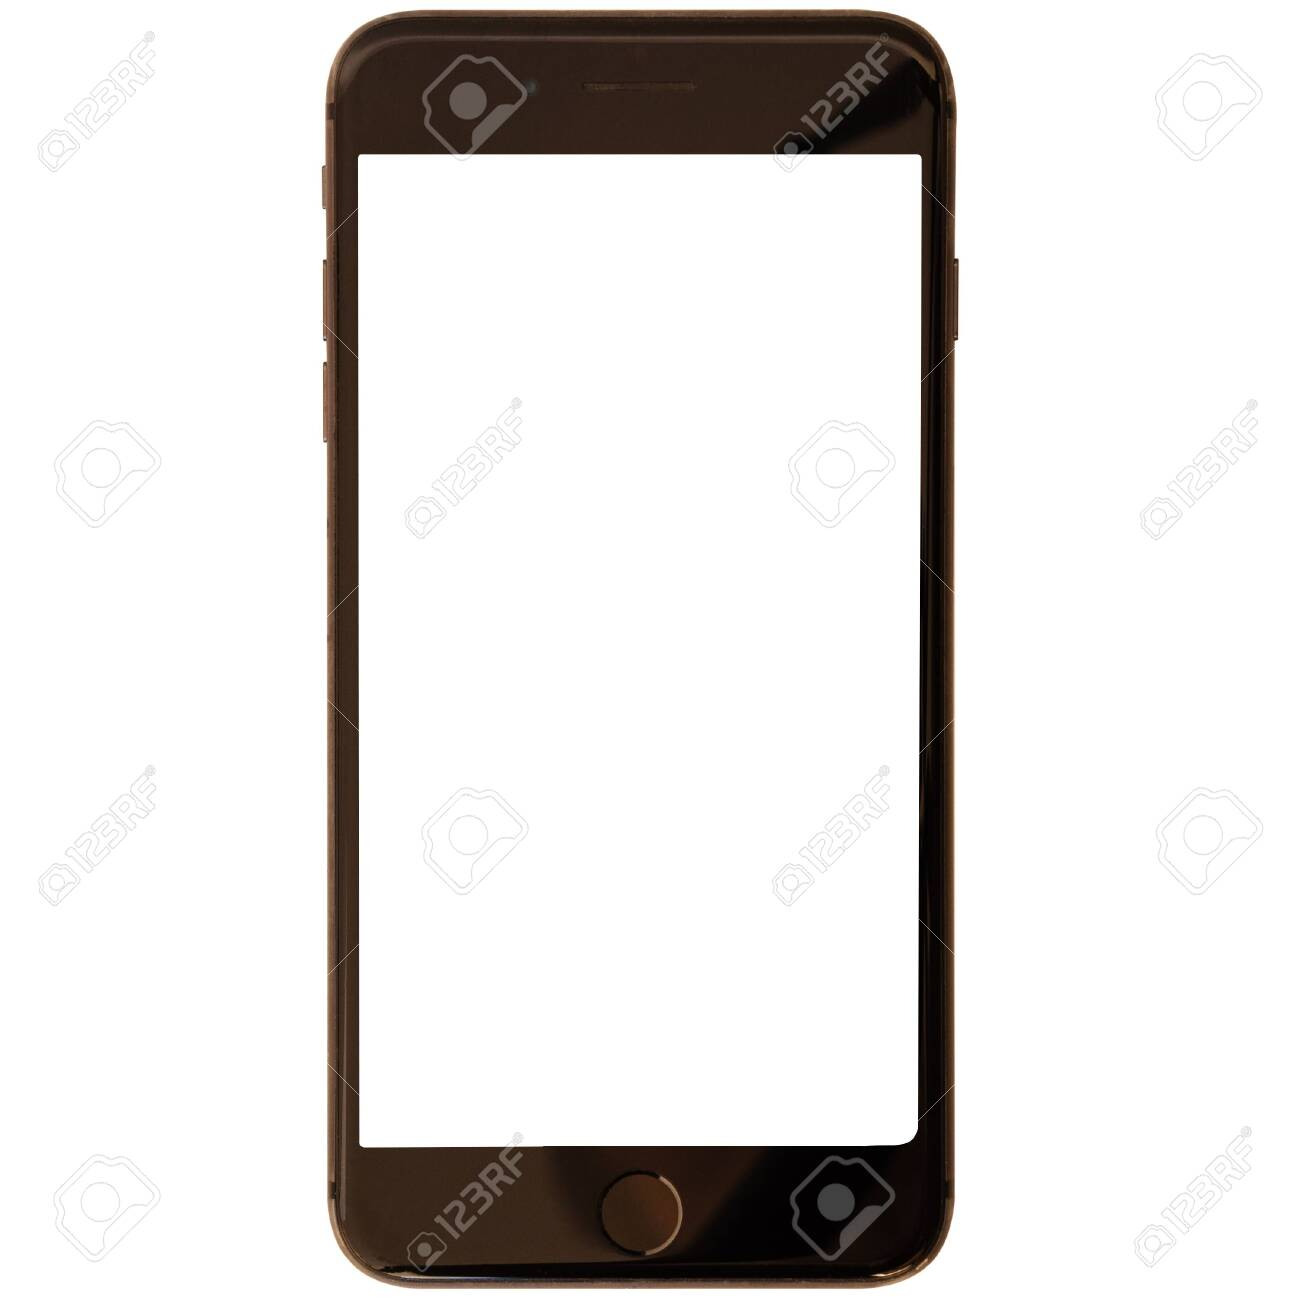 Modern smartphone isolated on white background - 144424004